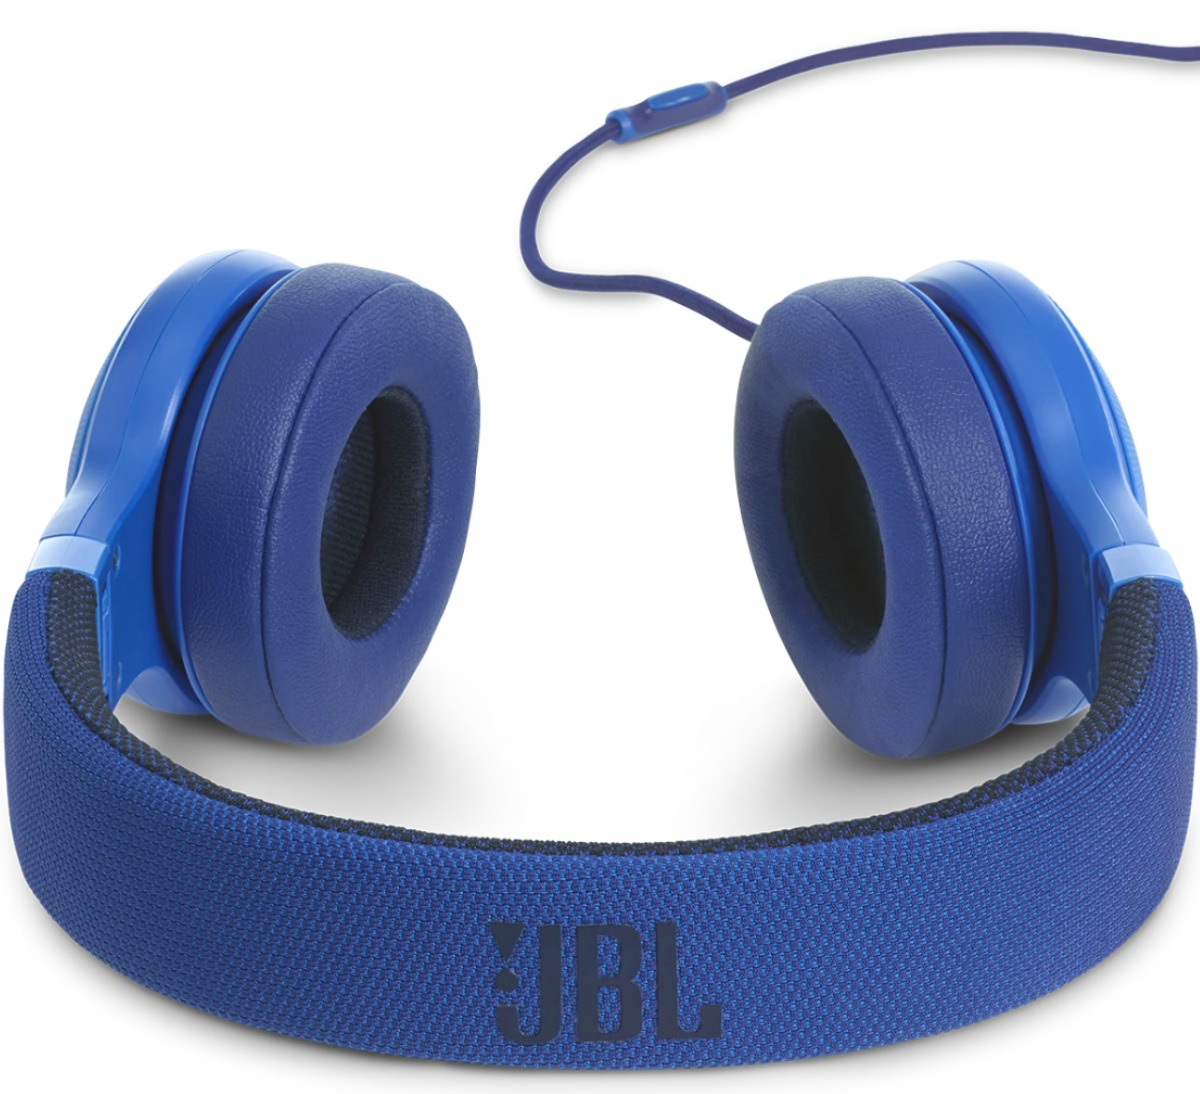 Blue wired headphones with cushioned ear pads